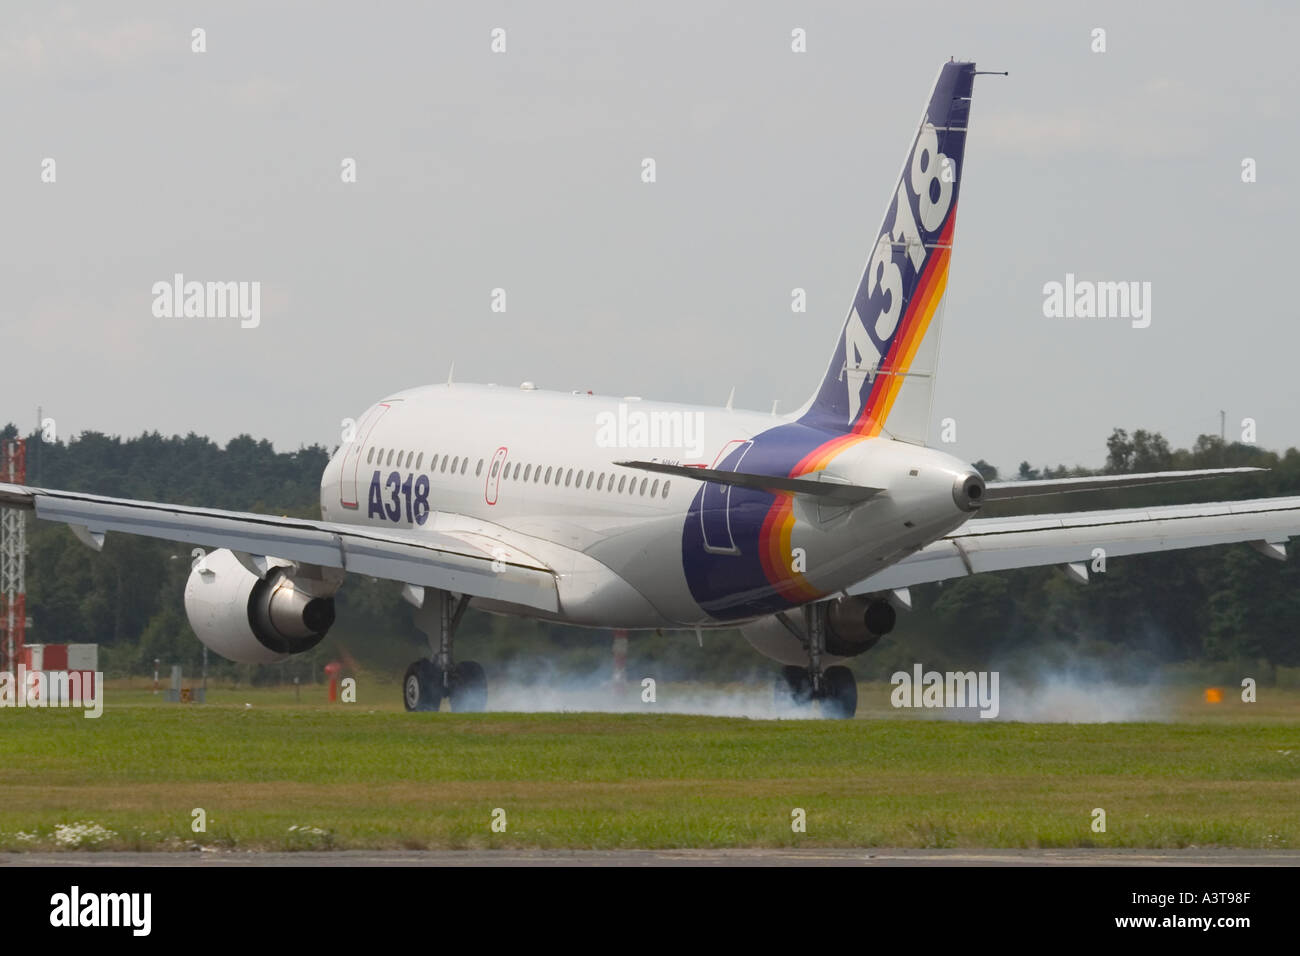 Smallest Airbus A318 landing at Farnborough airshow after display 2004 - Stock Image